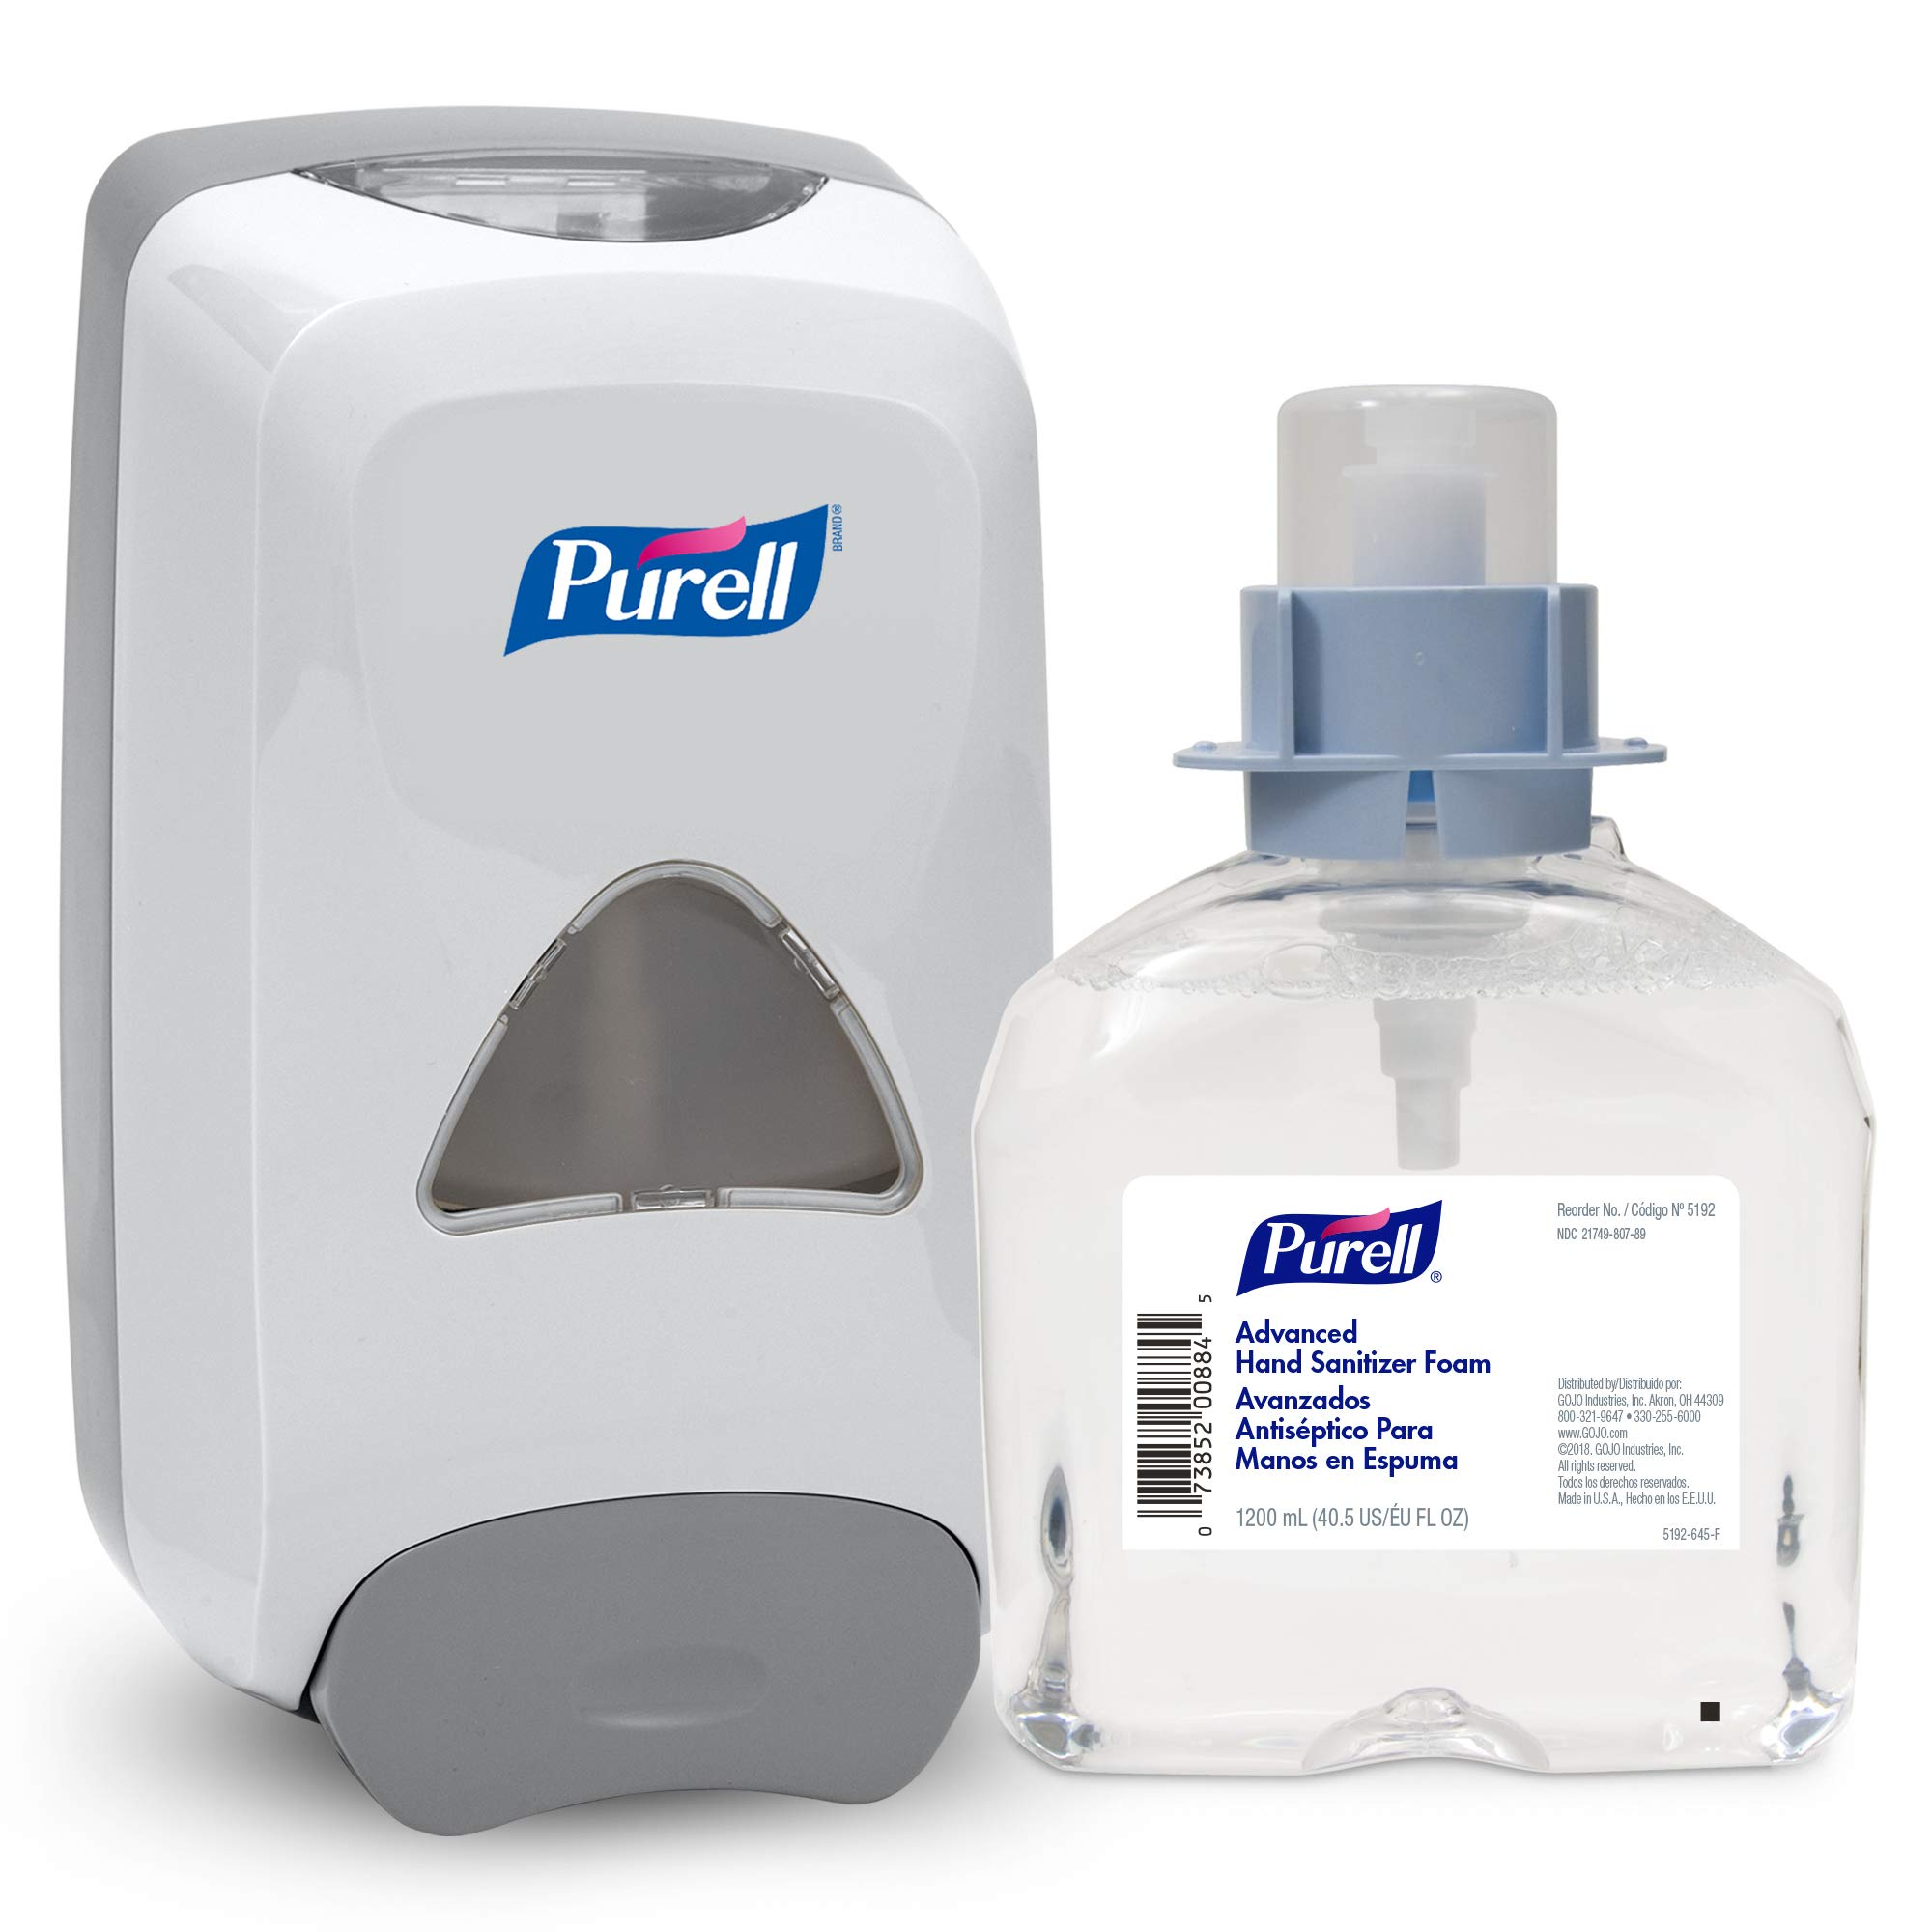 PURELL Advanced Hand Sanitizer Foam FMX-12 Starter Kit, 1 - 1200 mL Advanced Hand Sanitizer Foam Refill + 1 - PURELL FMX-12 Dove Grey Push-Style Dispenser – 5192-D1 by Purell (Image #1)